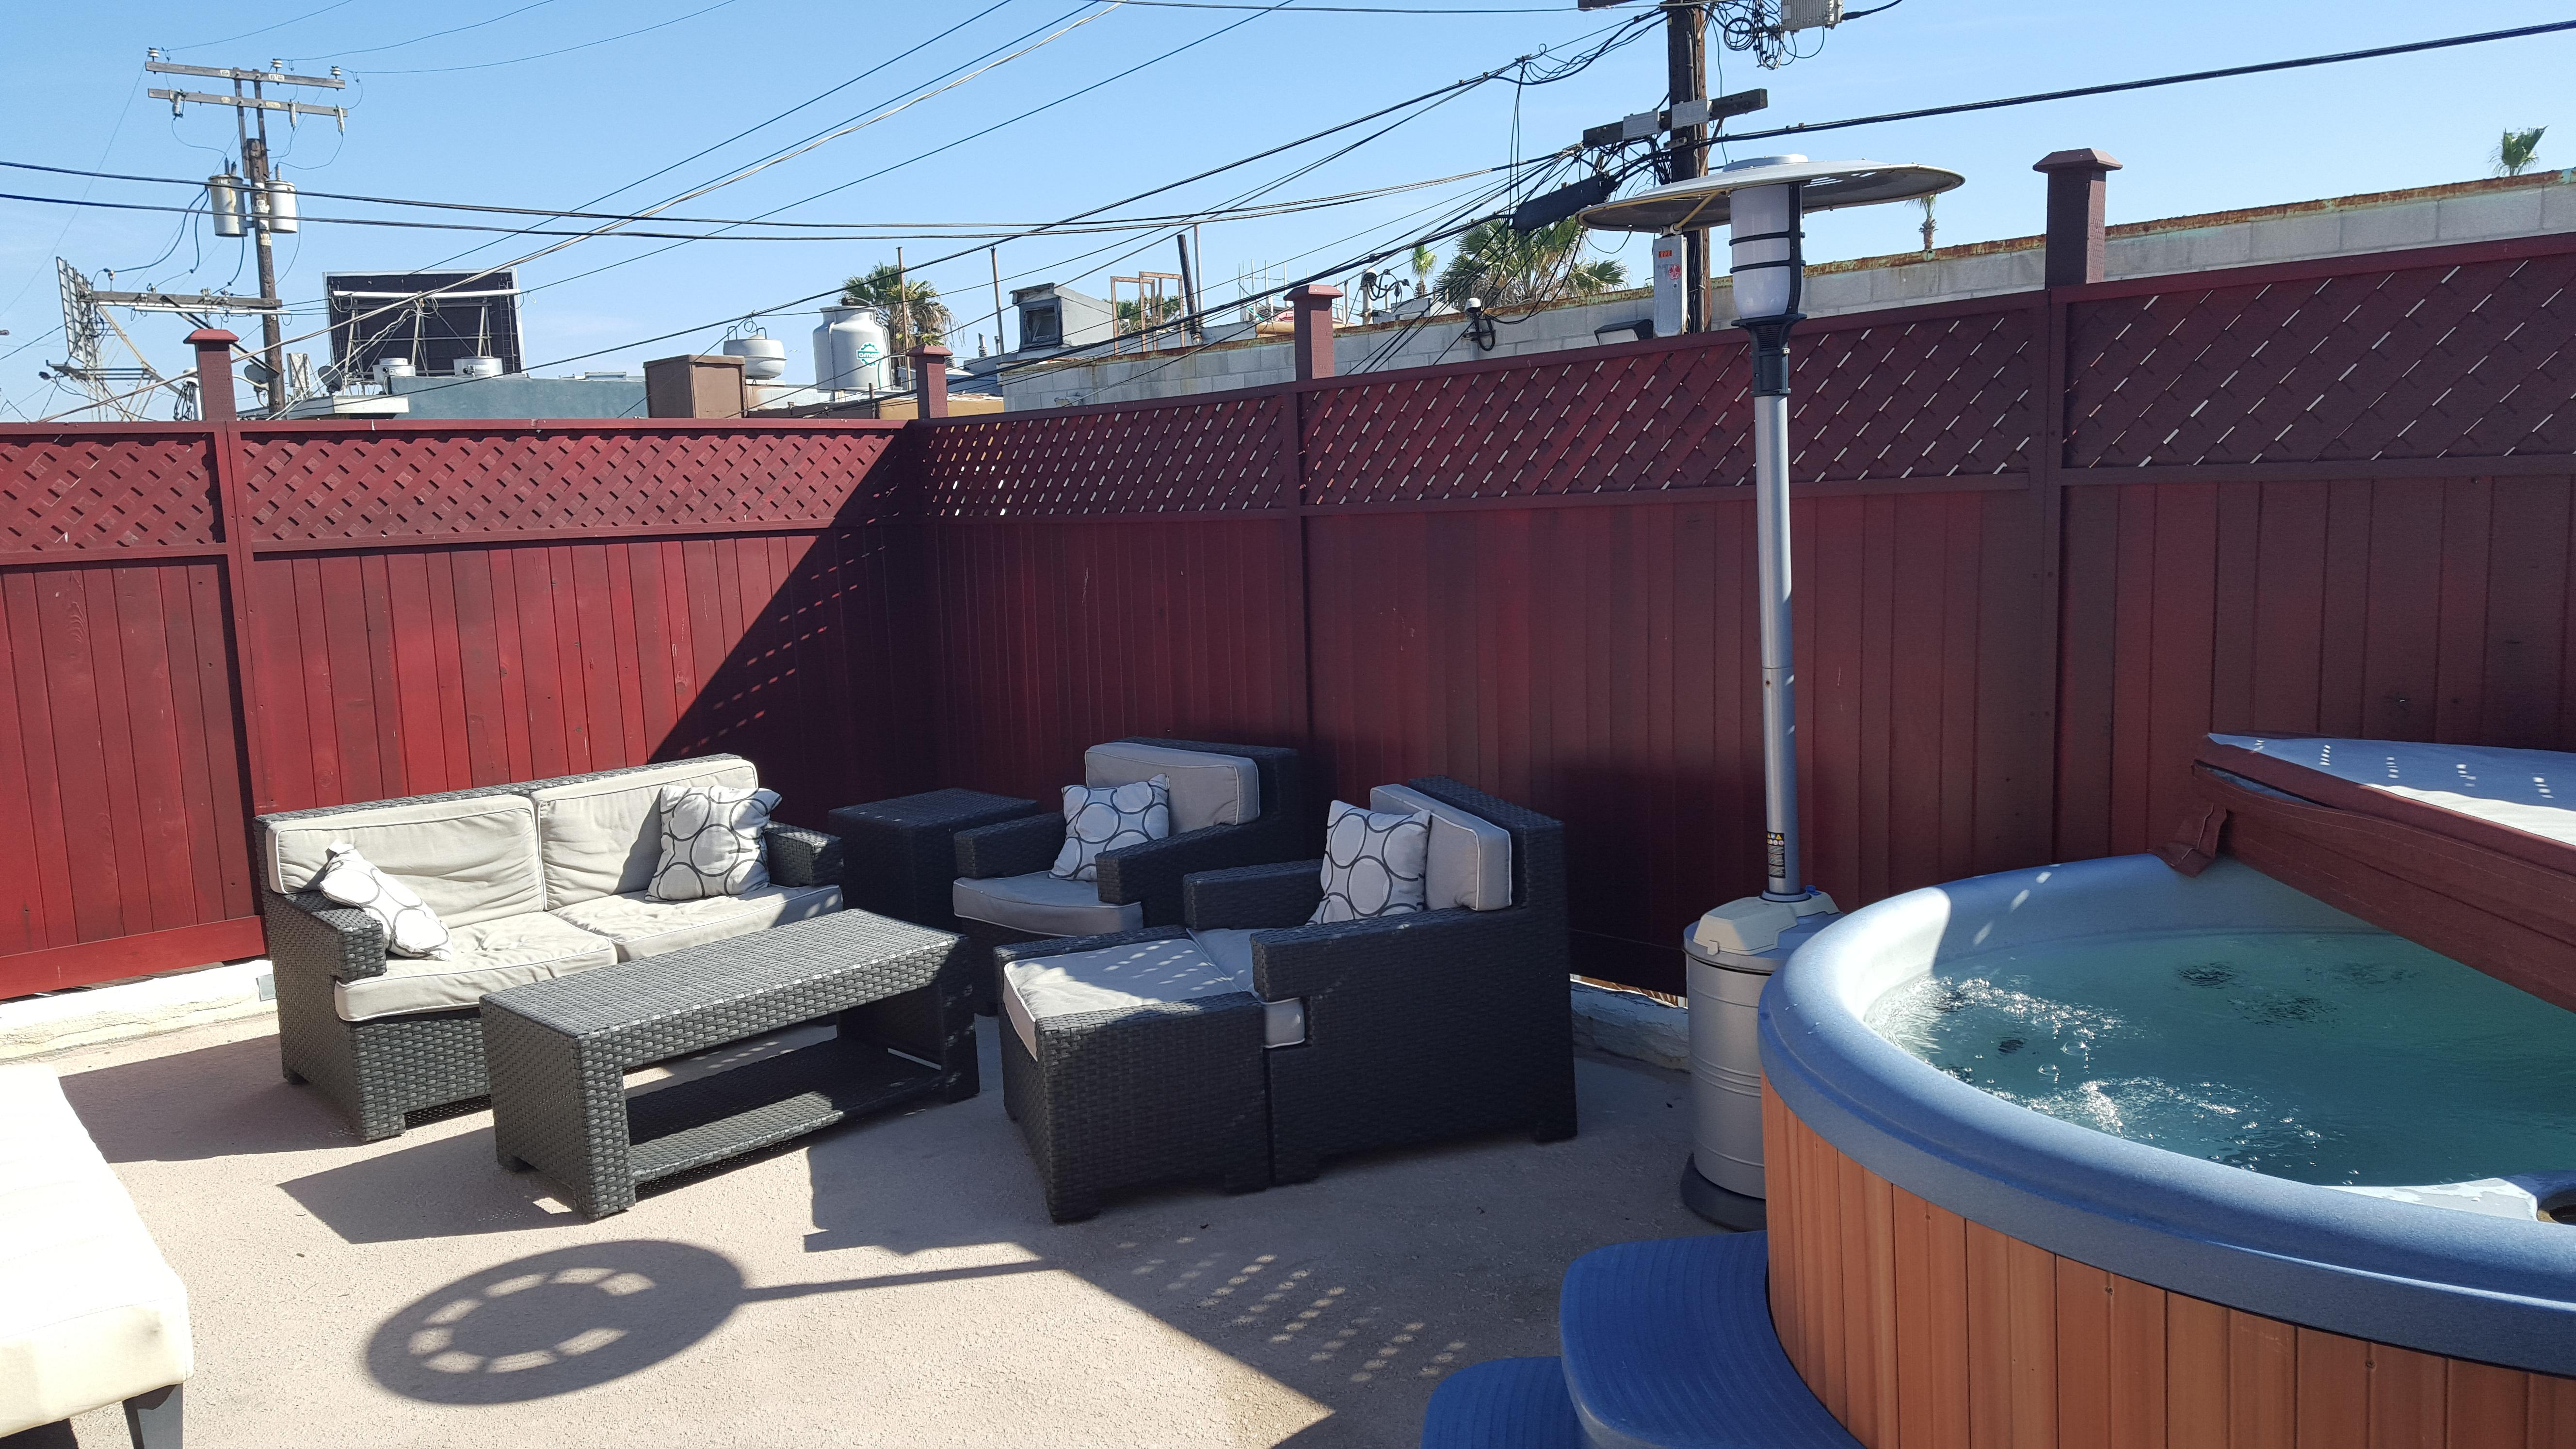 Jacuzzi deck and Patio Furniture